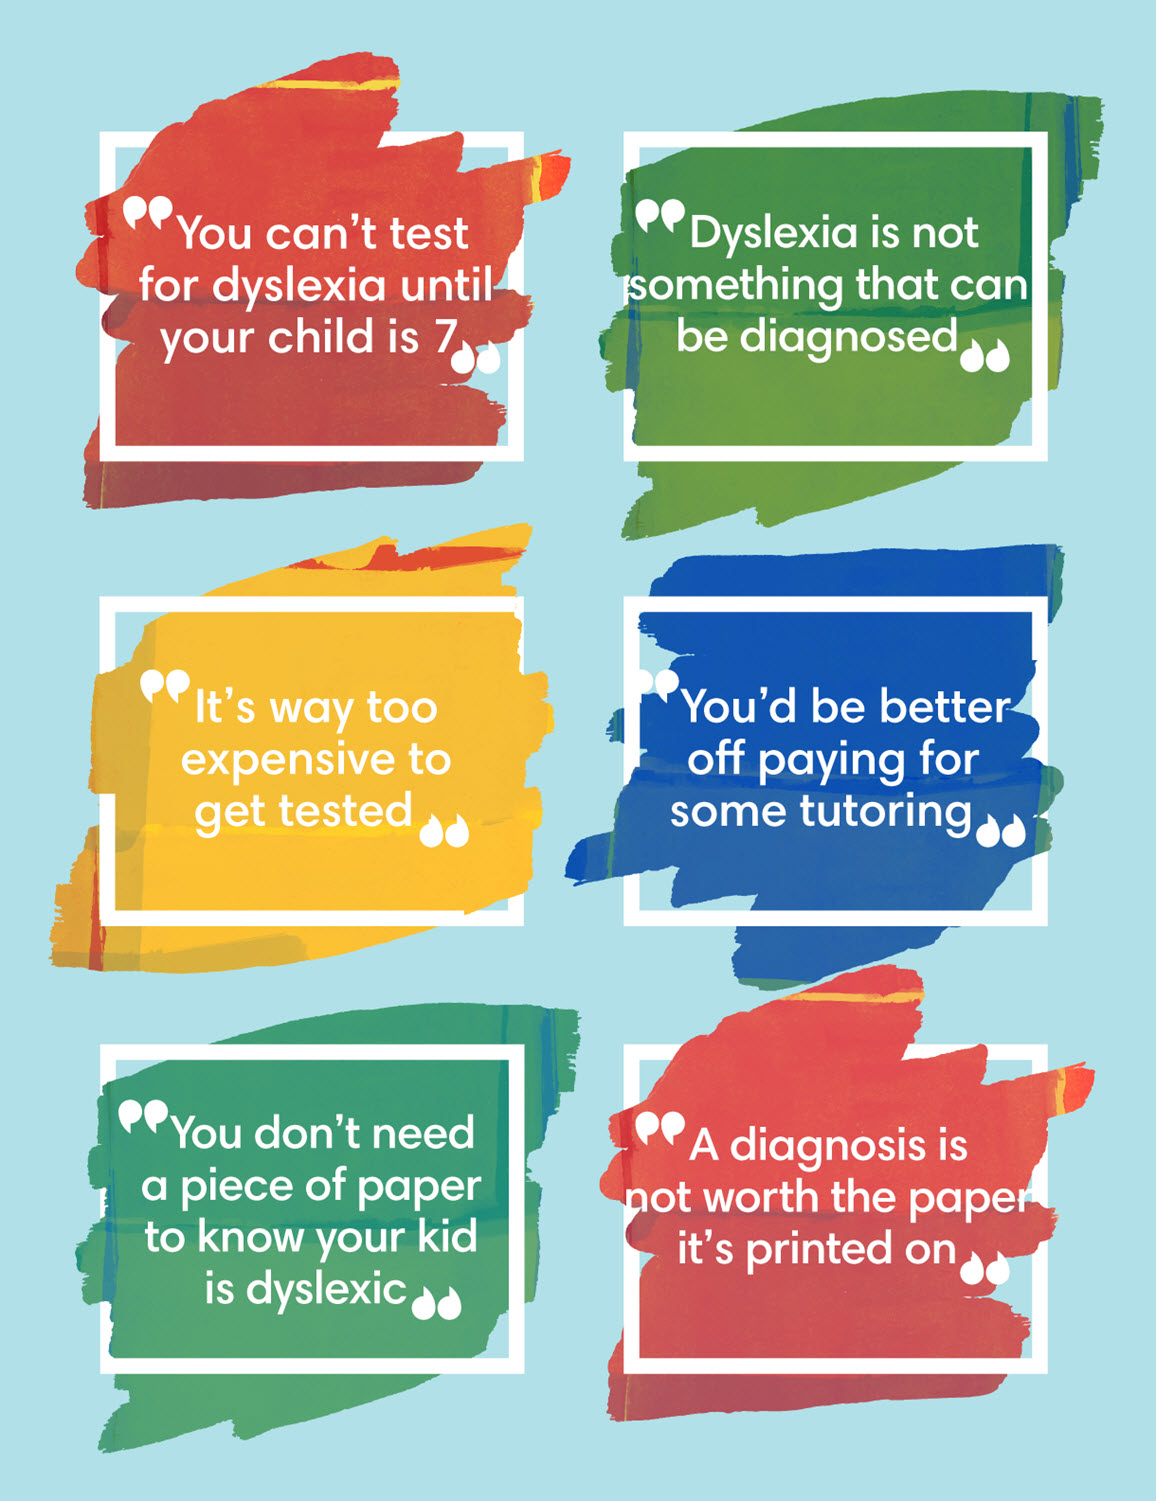 how to get tested for dyslexia